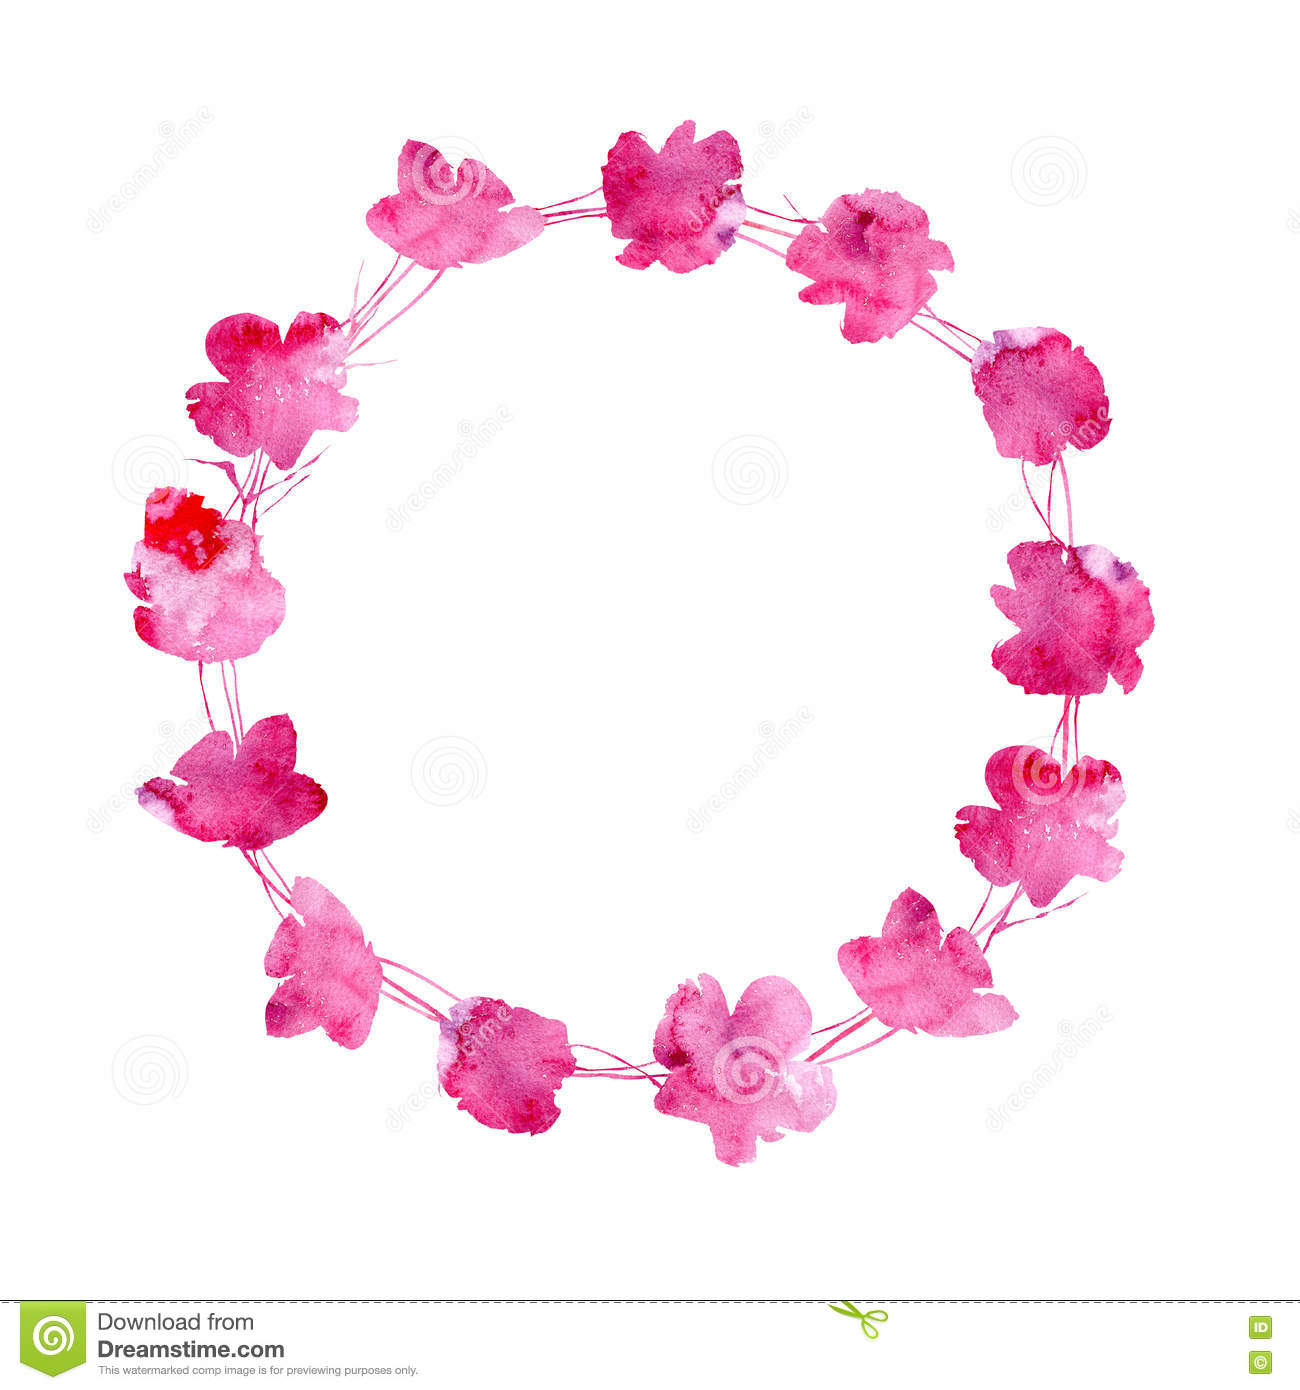 Garland With Poppy Flowers From Watery Stains. Stock Illustration.